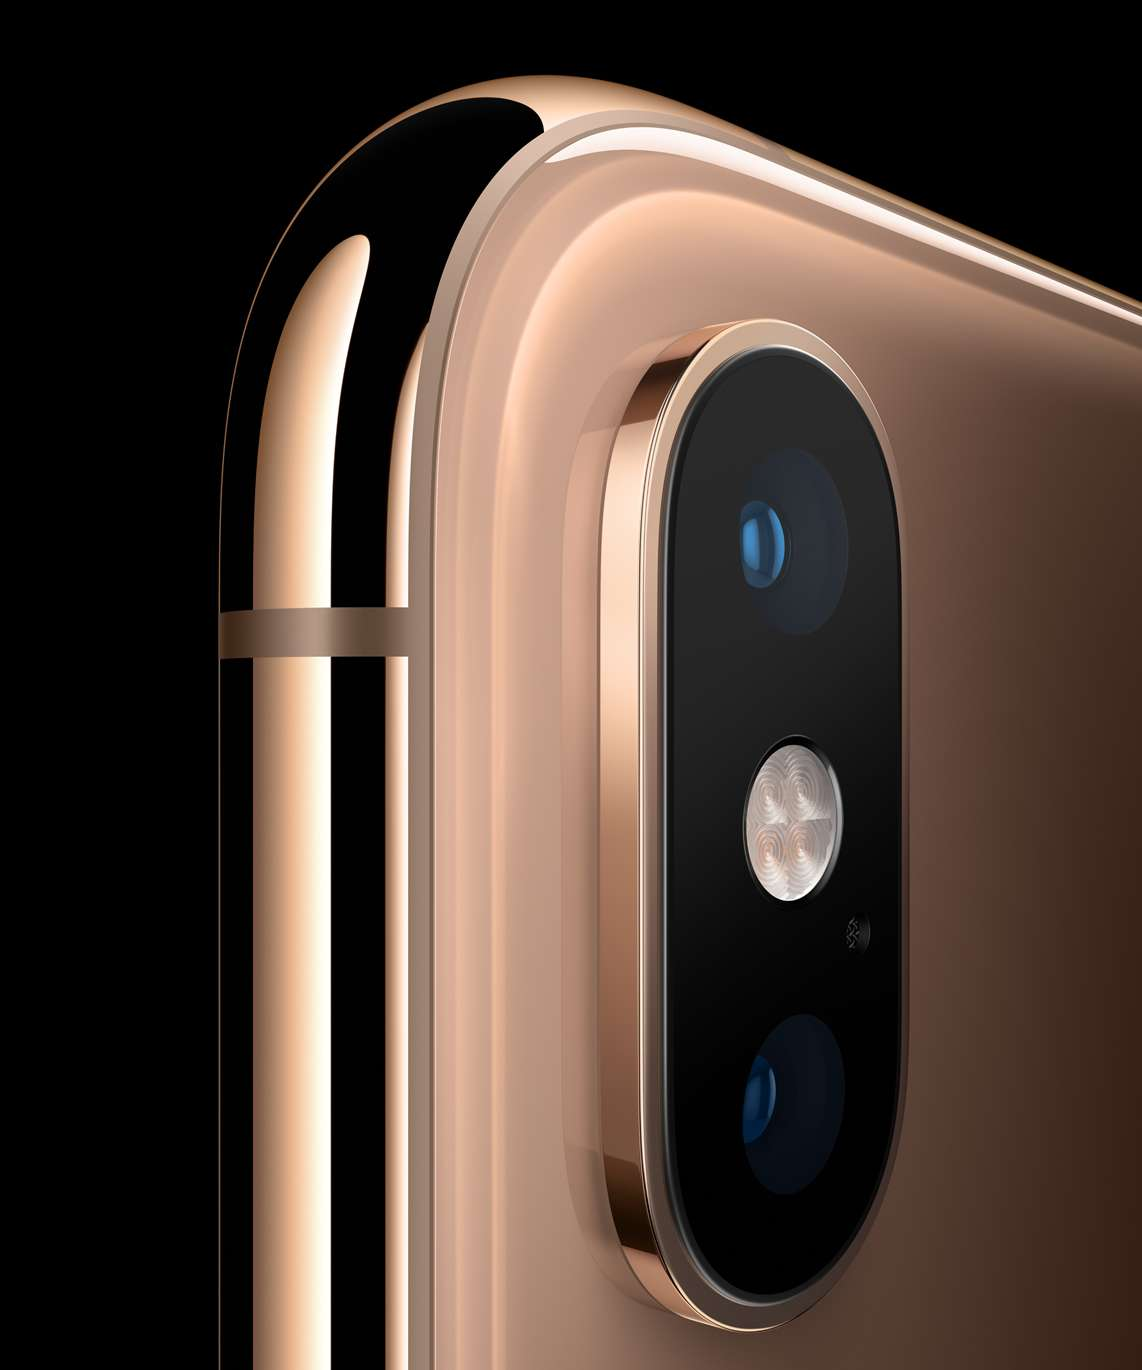 2019 iPhone XR To Feature A Dual Camera Setup - 2x Zoom Incoming, Leak Suggests 1